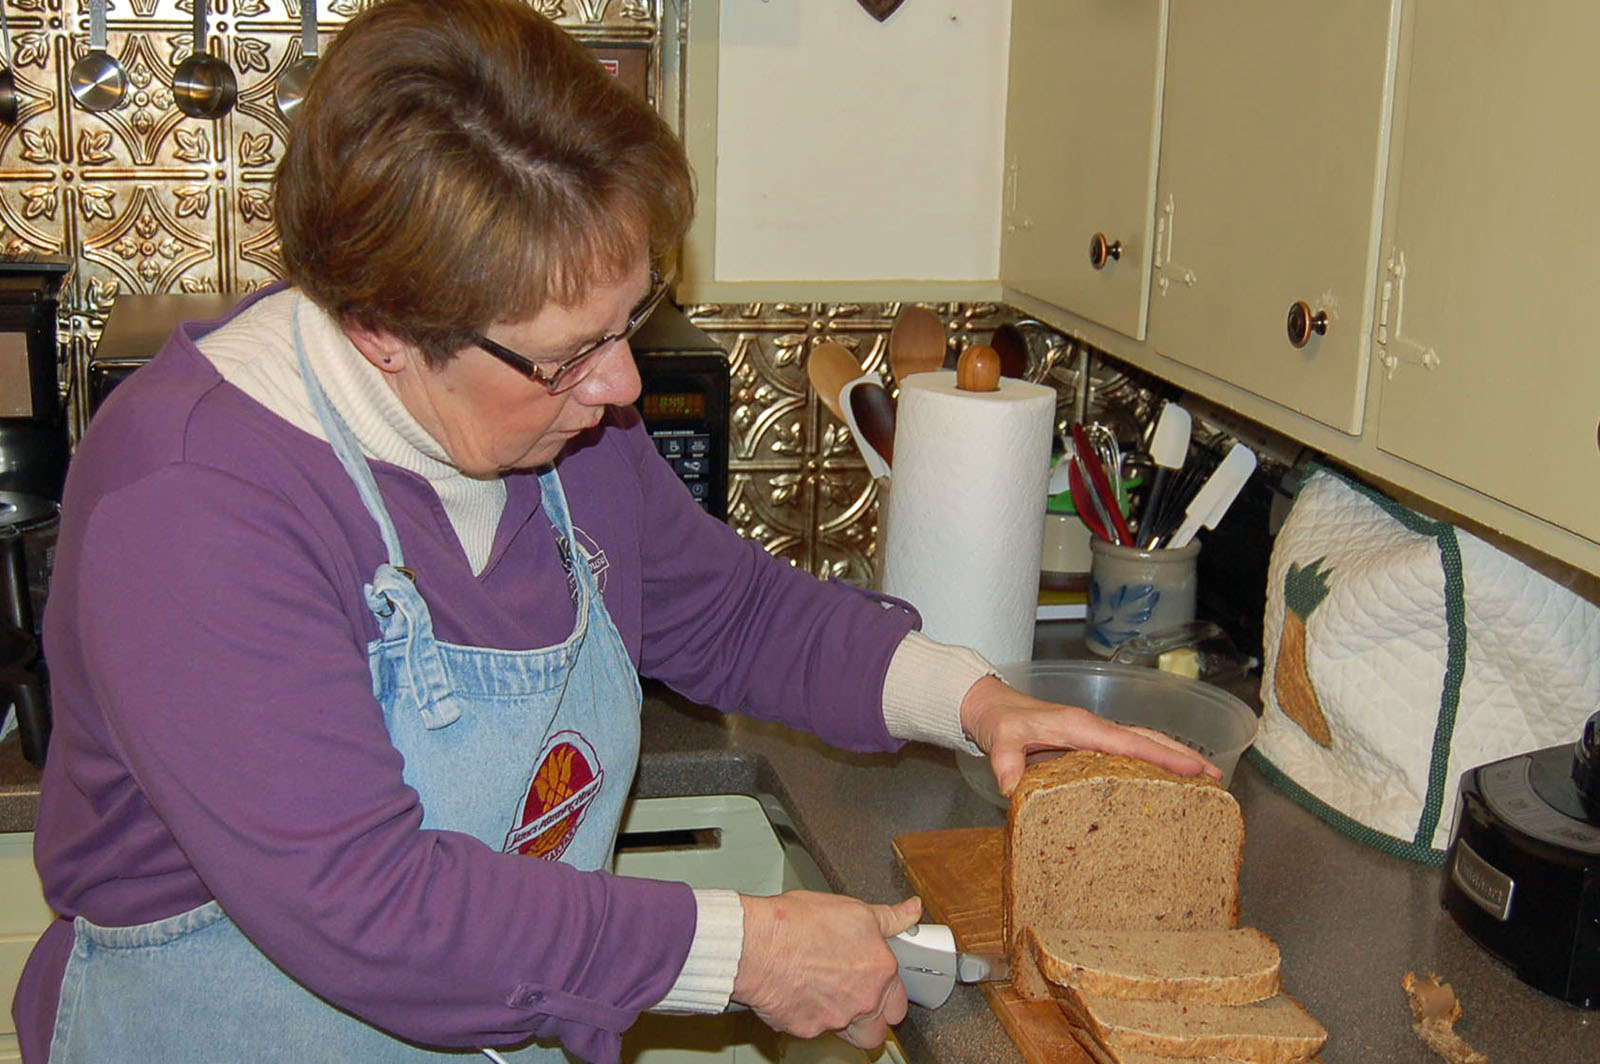 Homemade Bread, James Manning B&B, Honesdale, PA